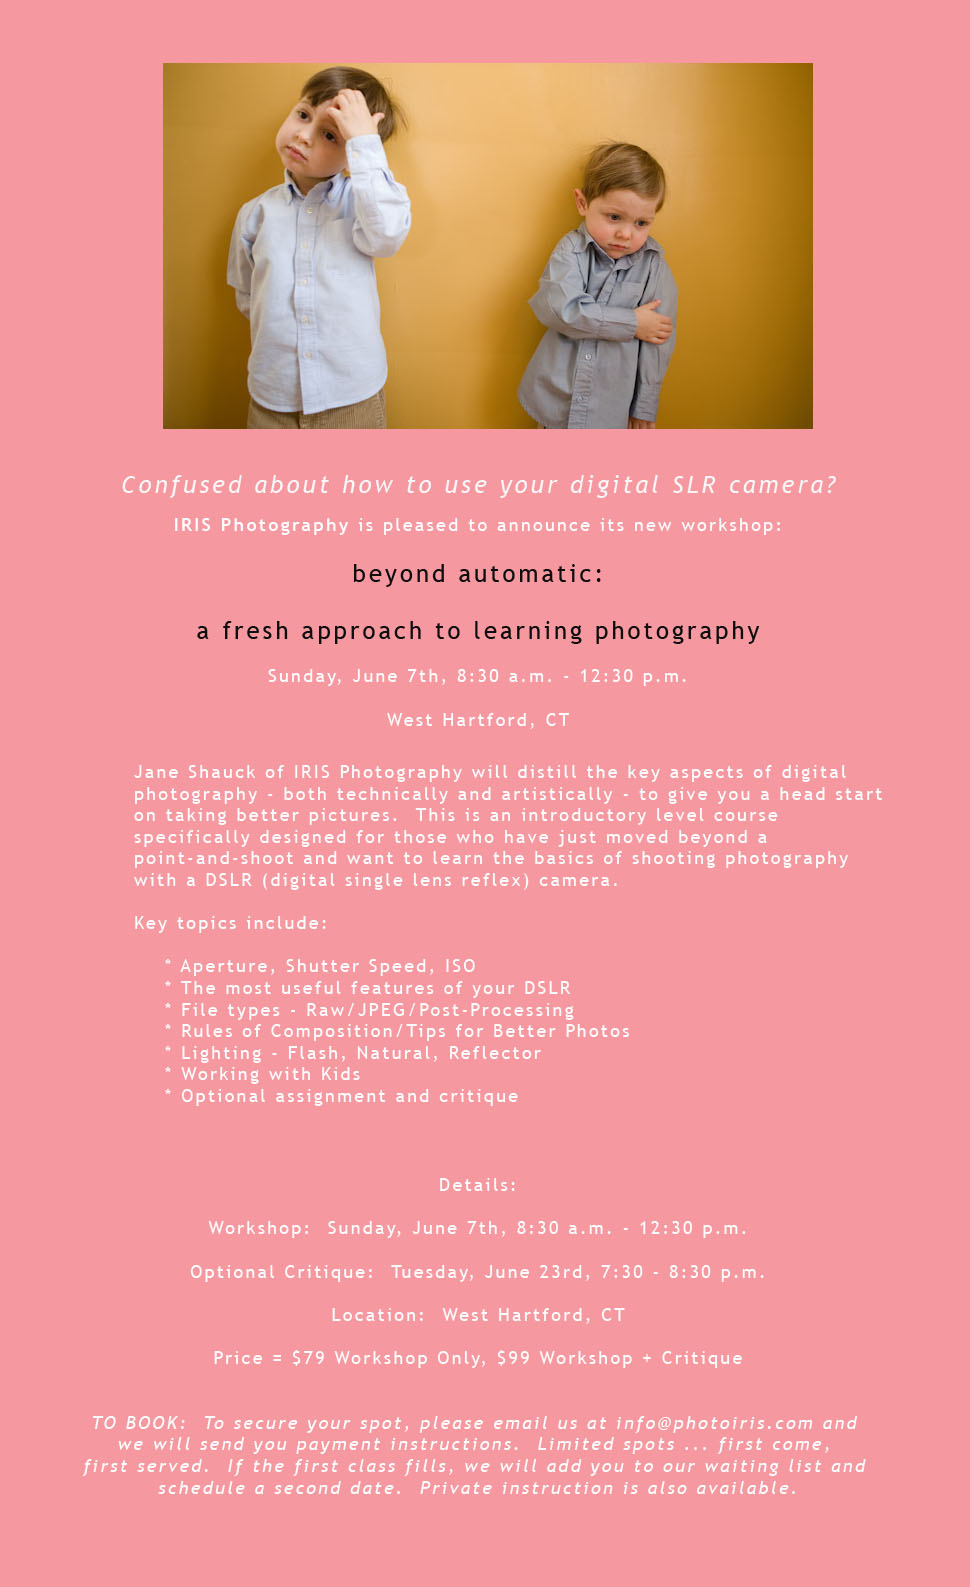 Photo workshop beyond automatic